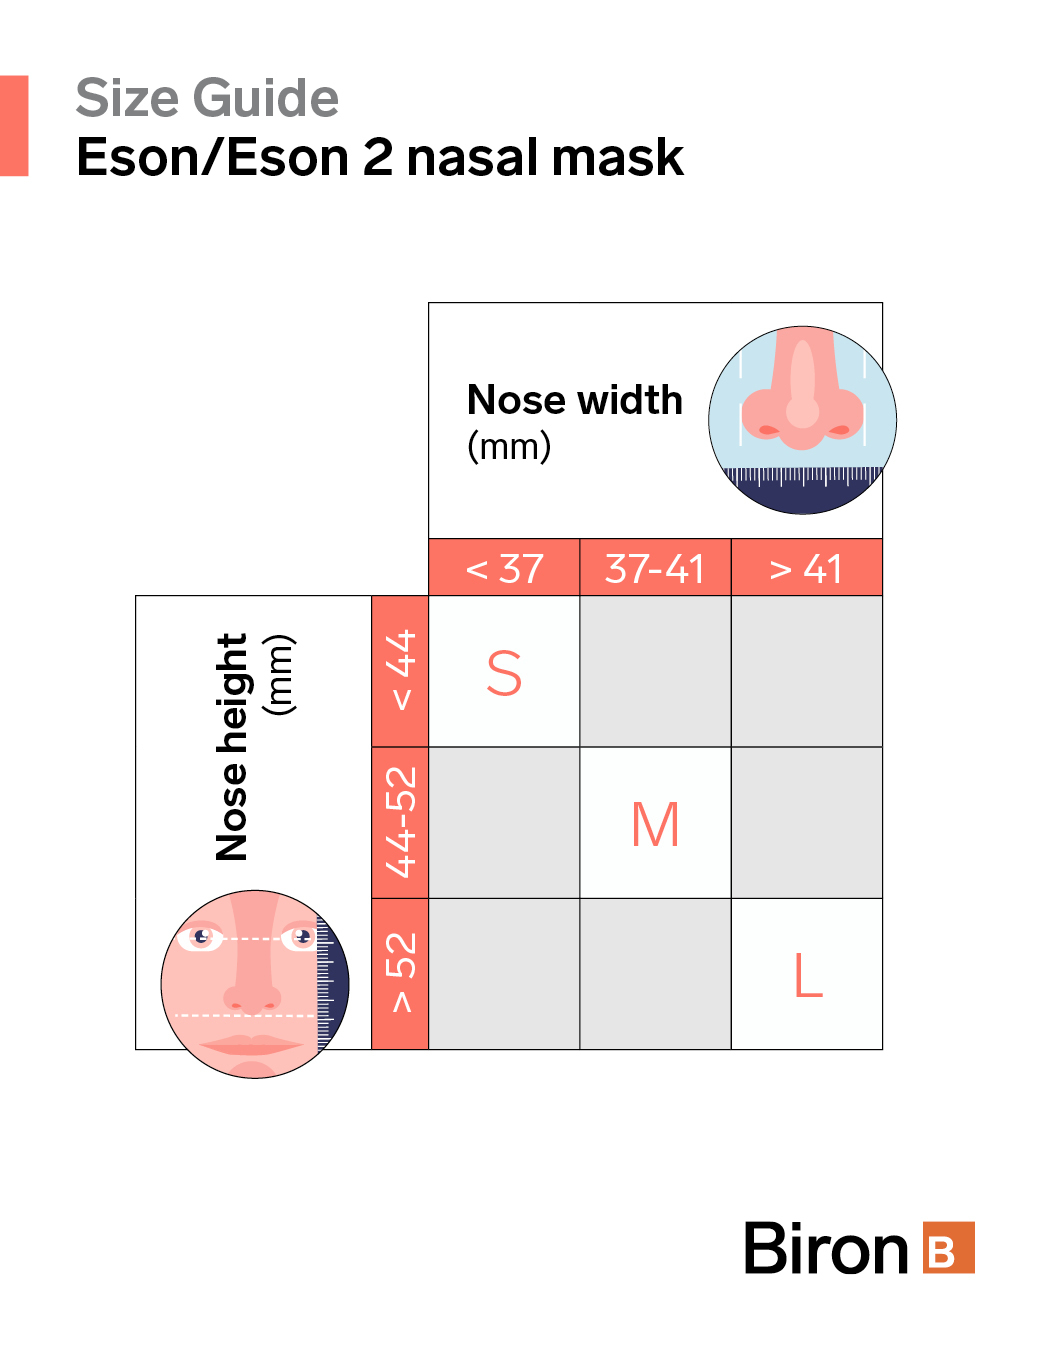 Size guide Eson/Eson 2 nasal mask